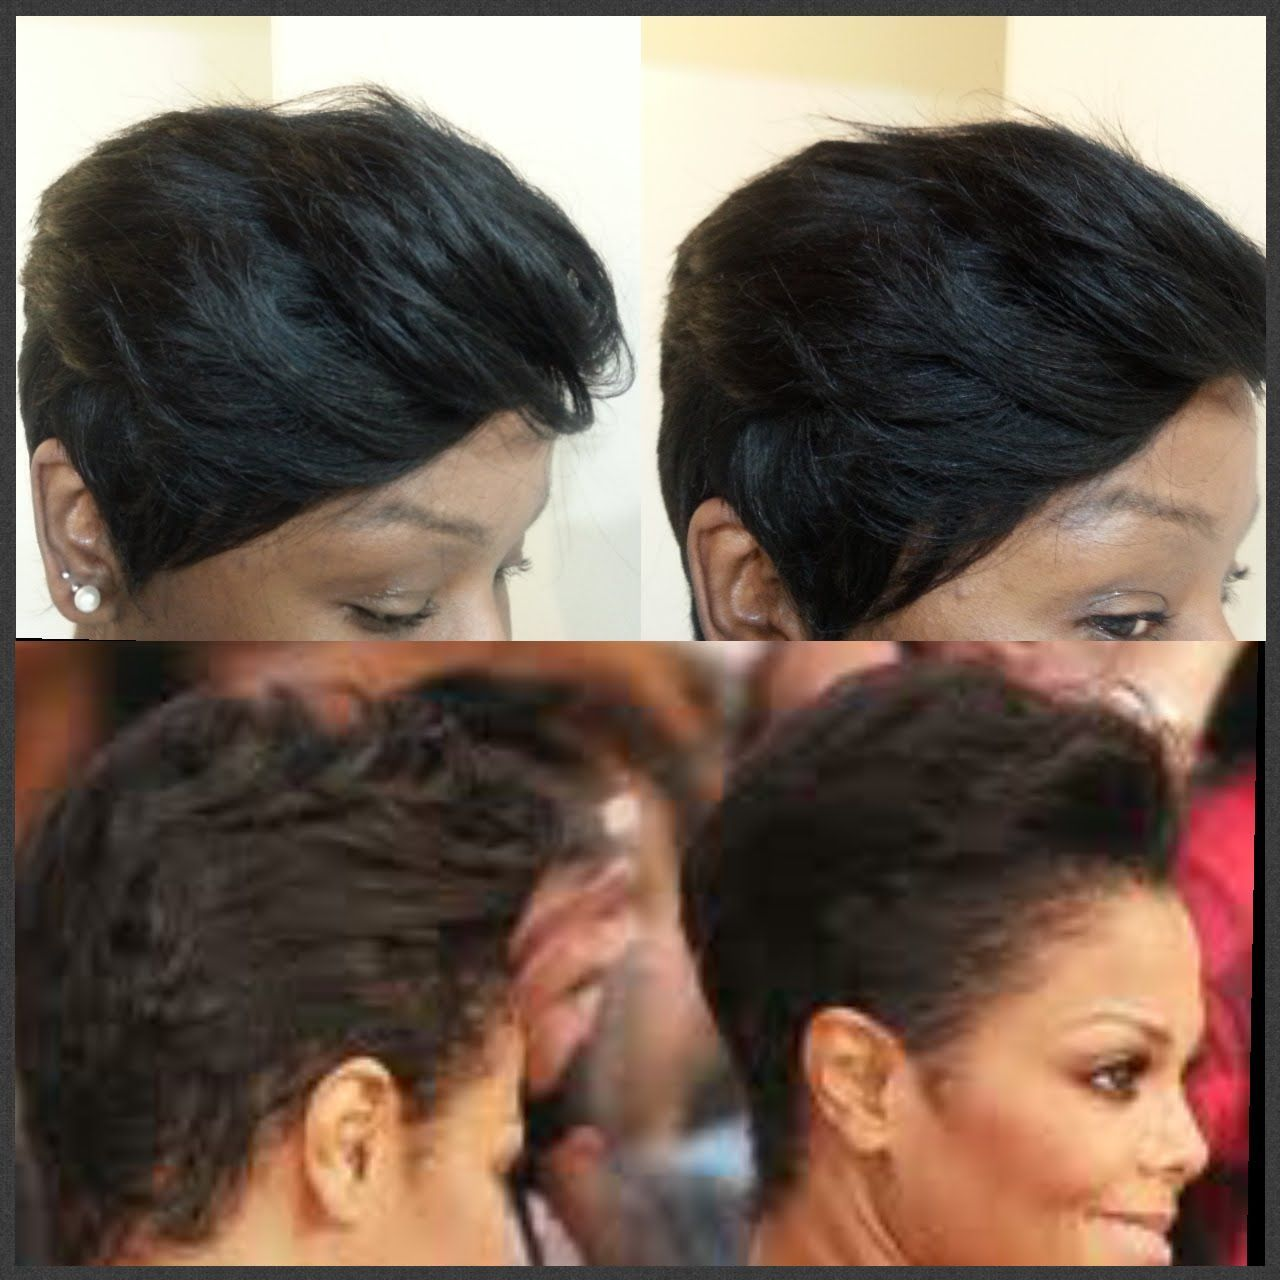 27 Piece Hair Weave Styles Pictures #27piecehairstyles